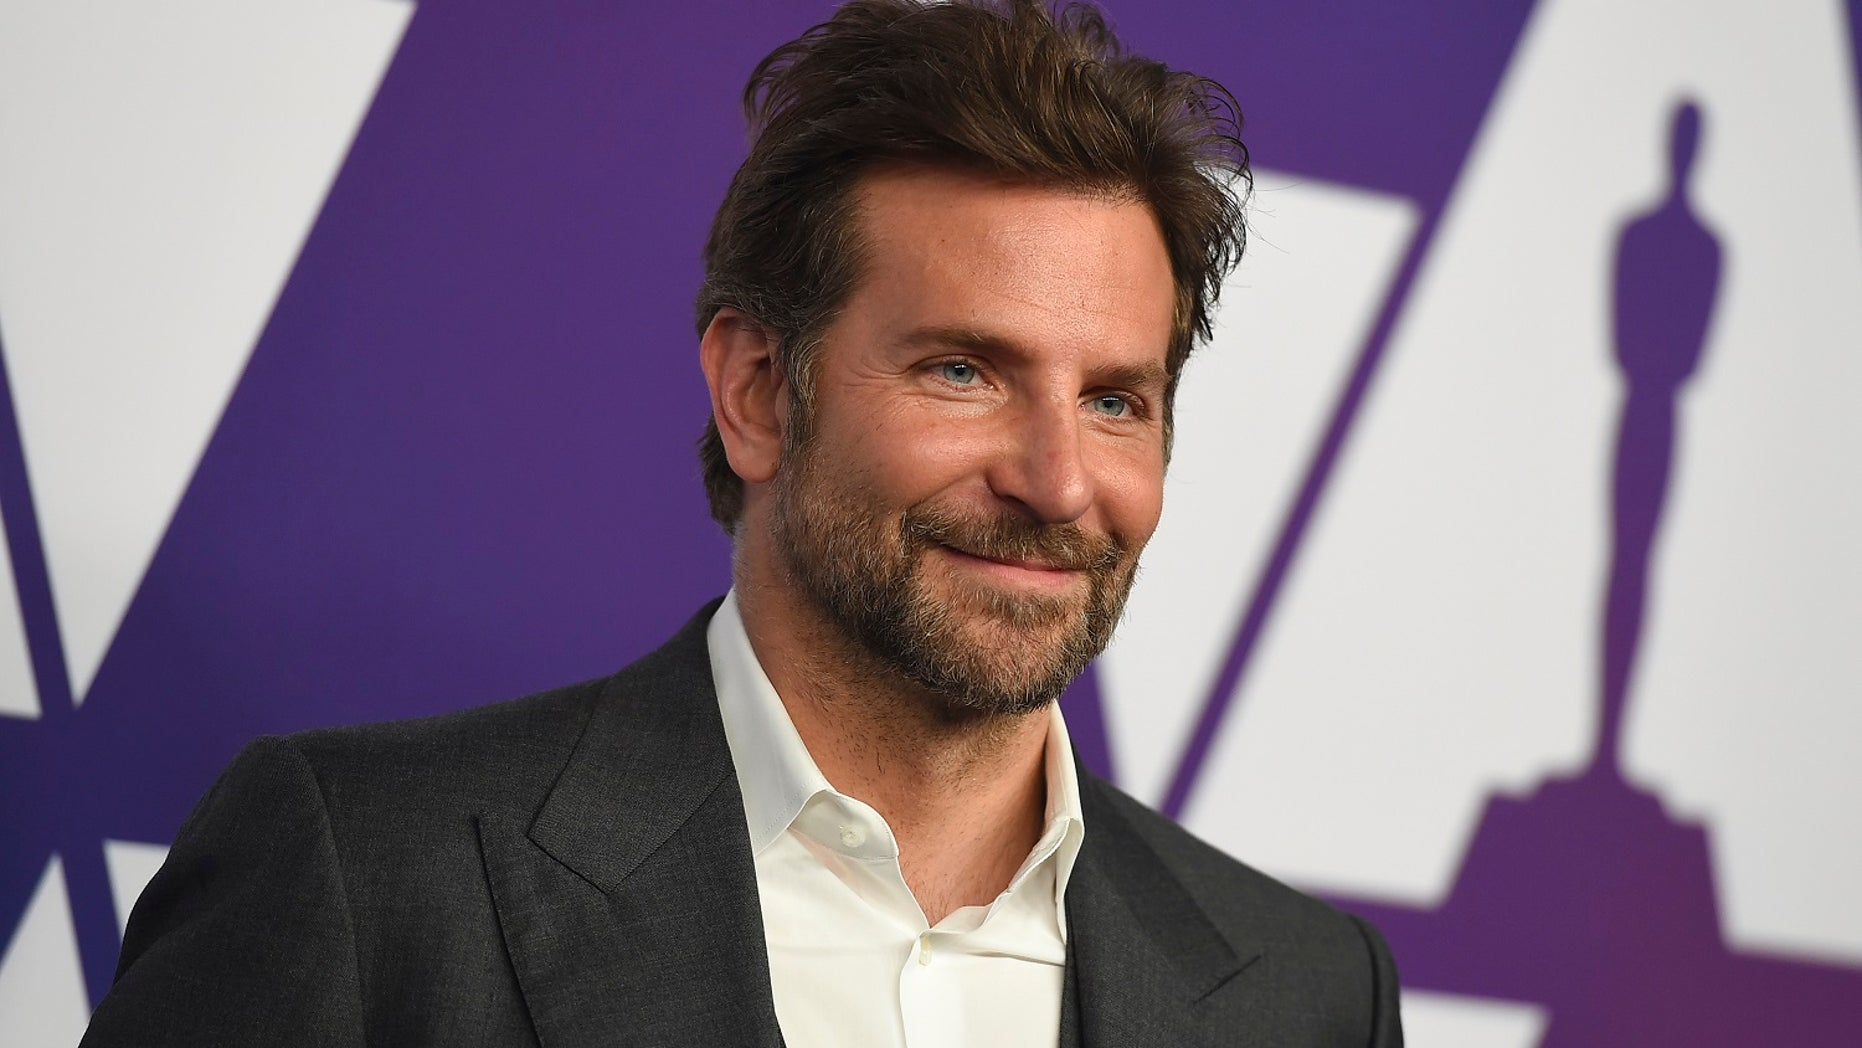 Bradley Cooper 'embarrassed' by Oscars snub